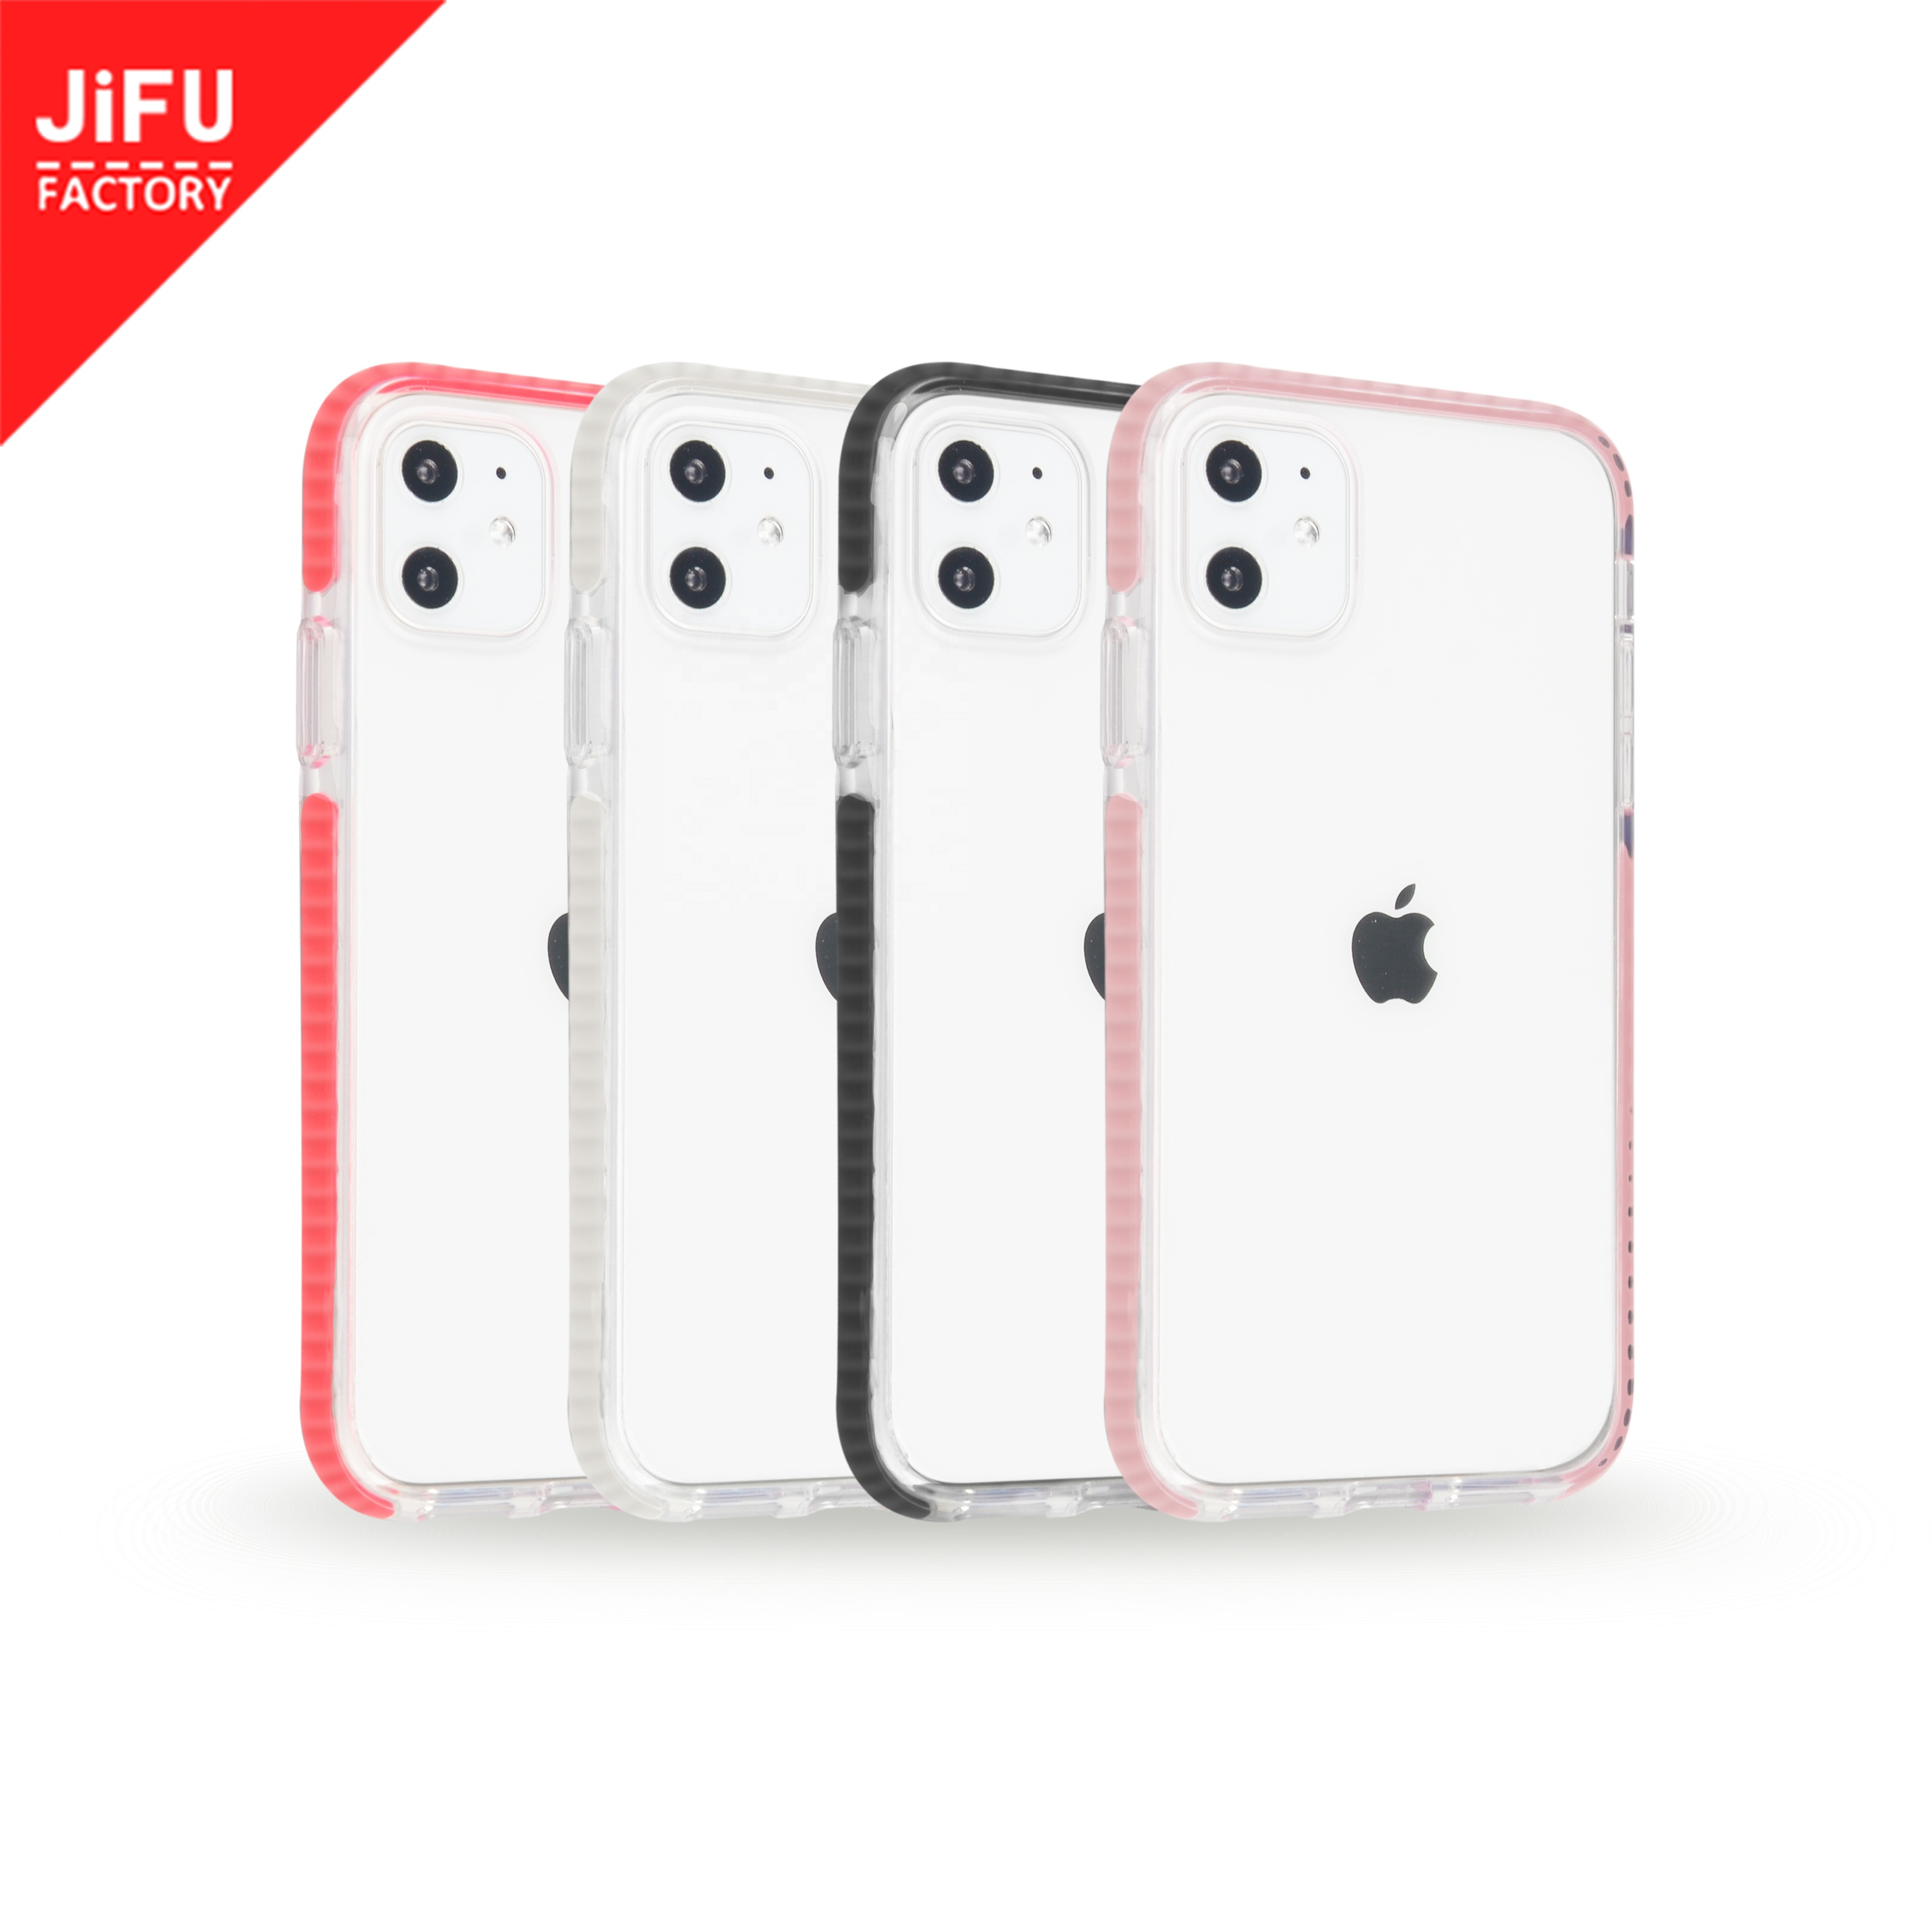 Top sell transparent PC+TPU two-tone impact <strong>phone</strong> <strong>case</strong> for iPhone11/11 Pro/11 Pro Max